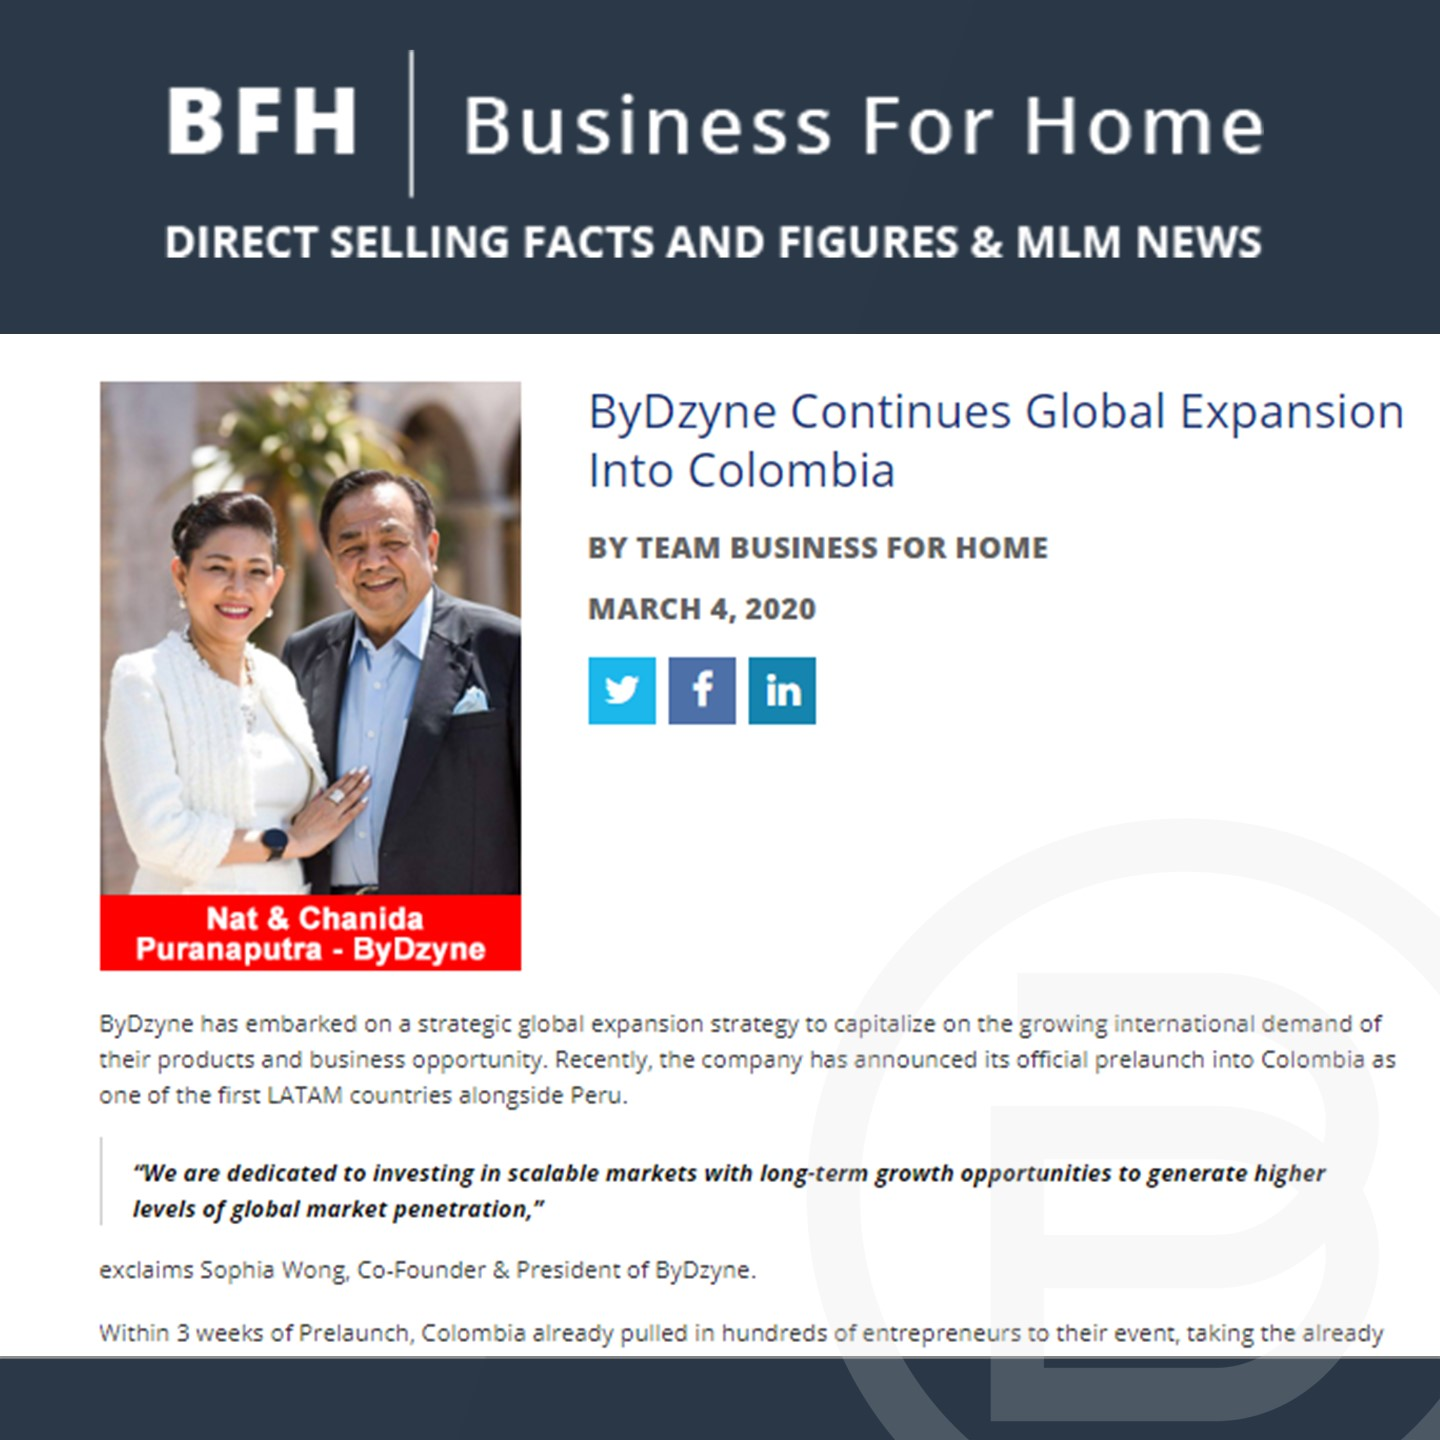 BFH: ByDzyne Continues Global Expansion Into Colombia